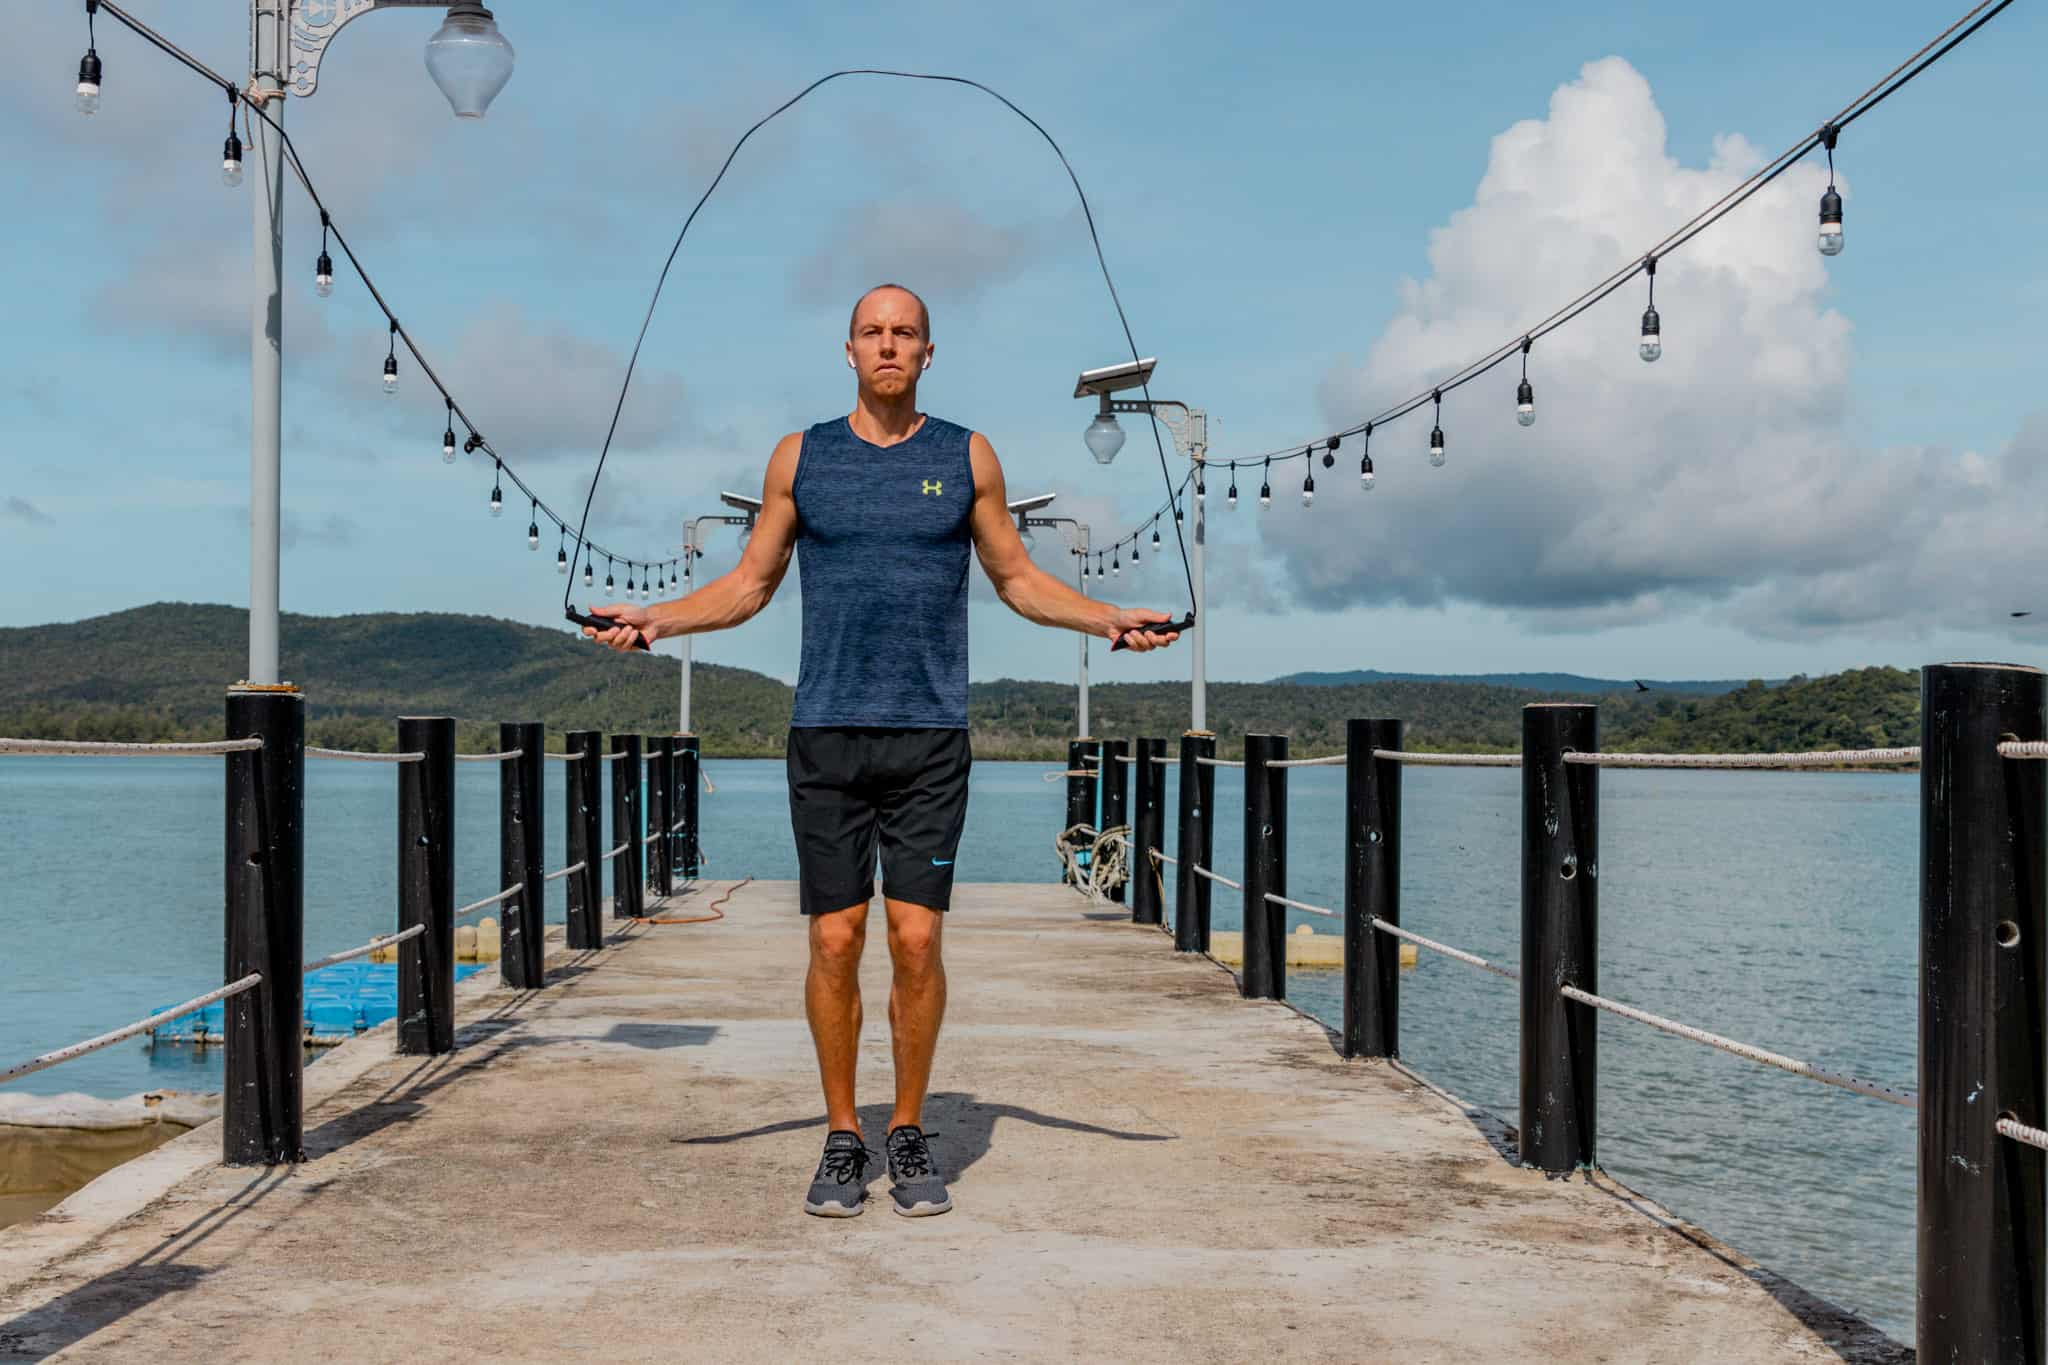 Nate jumping rope on dock in Koh Rong, Cambodia